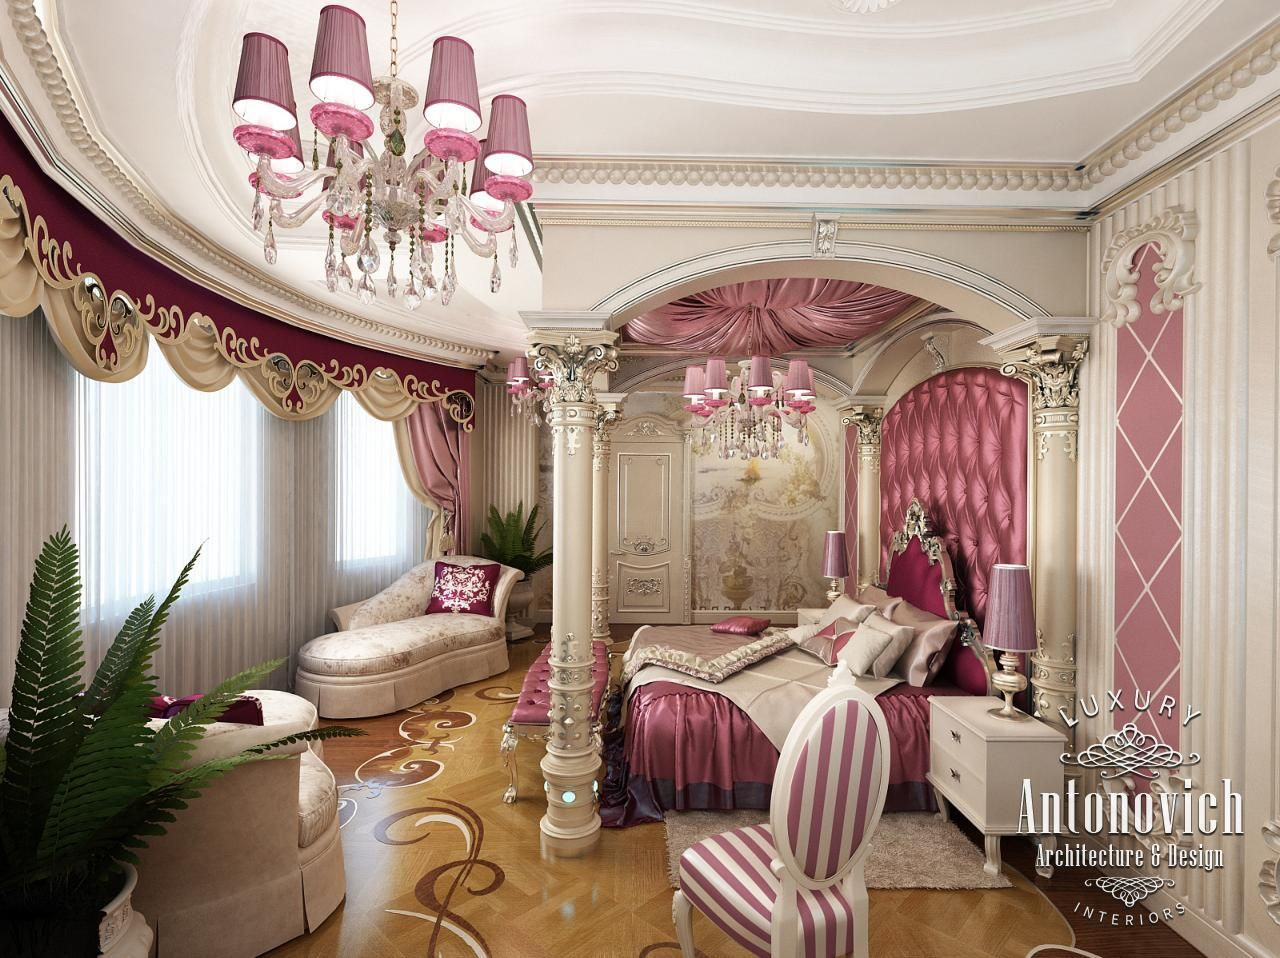 luxury antonovich design 10 girly home decor and interior themes - Home Decor Dubai